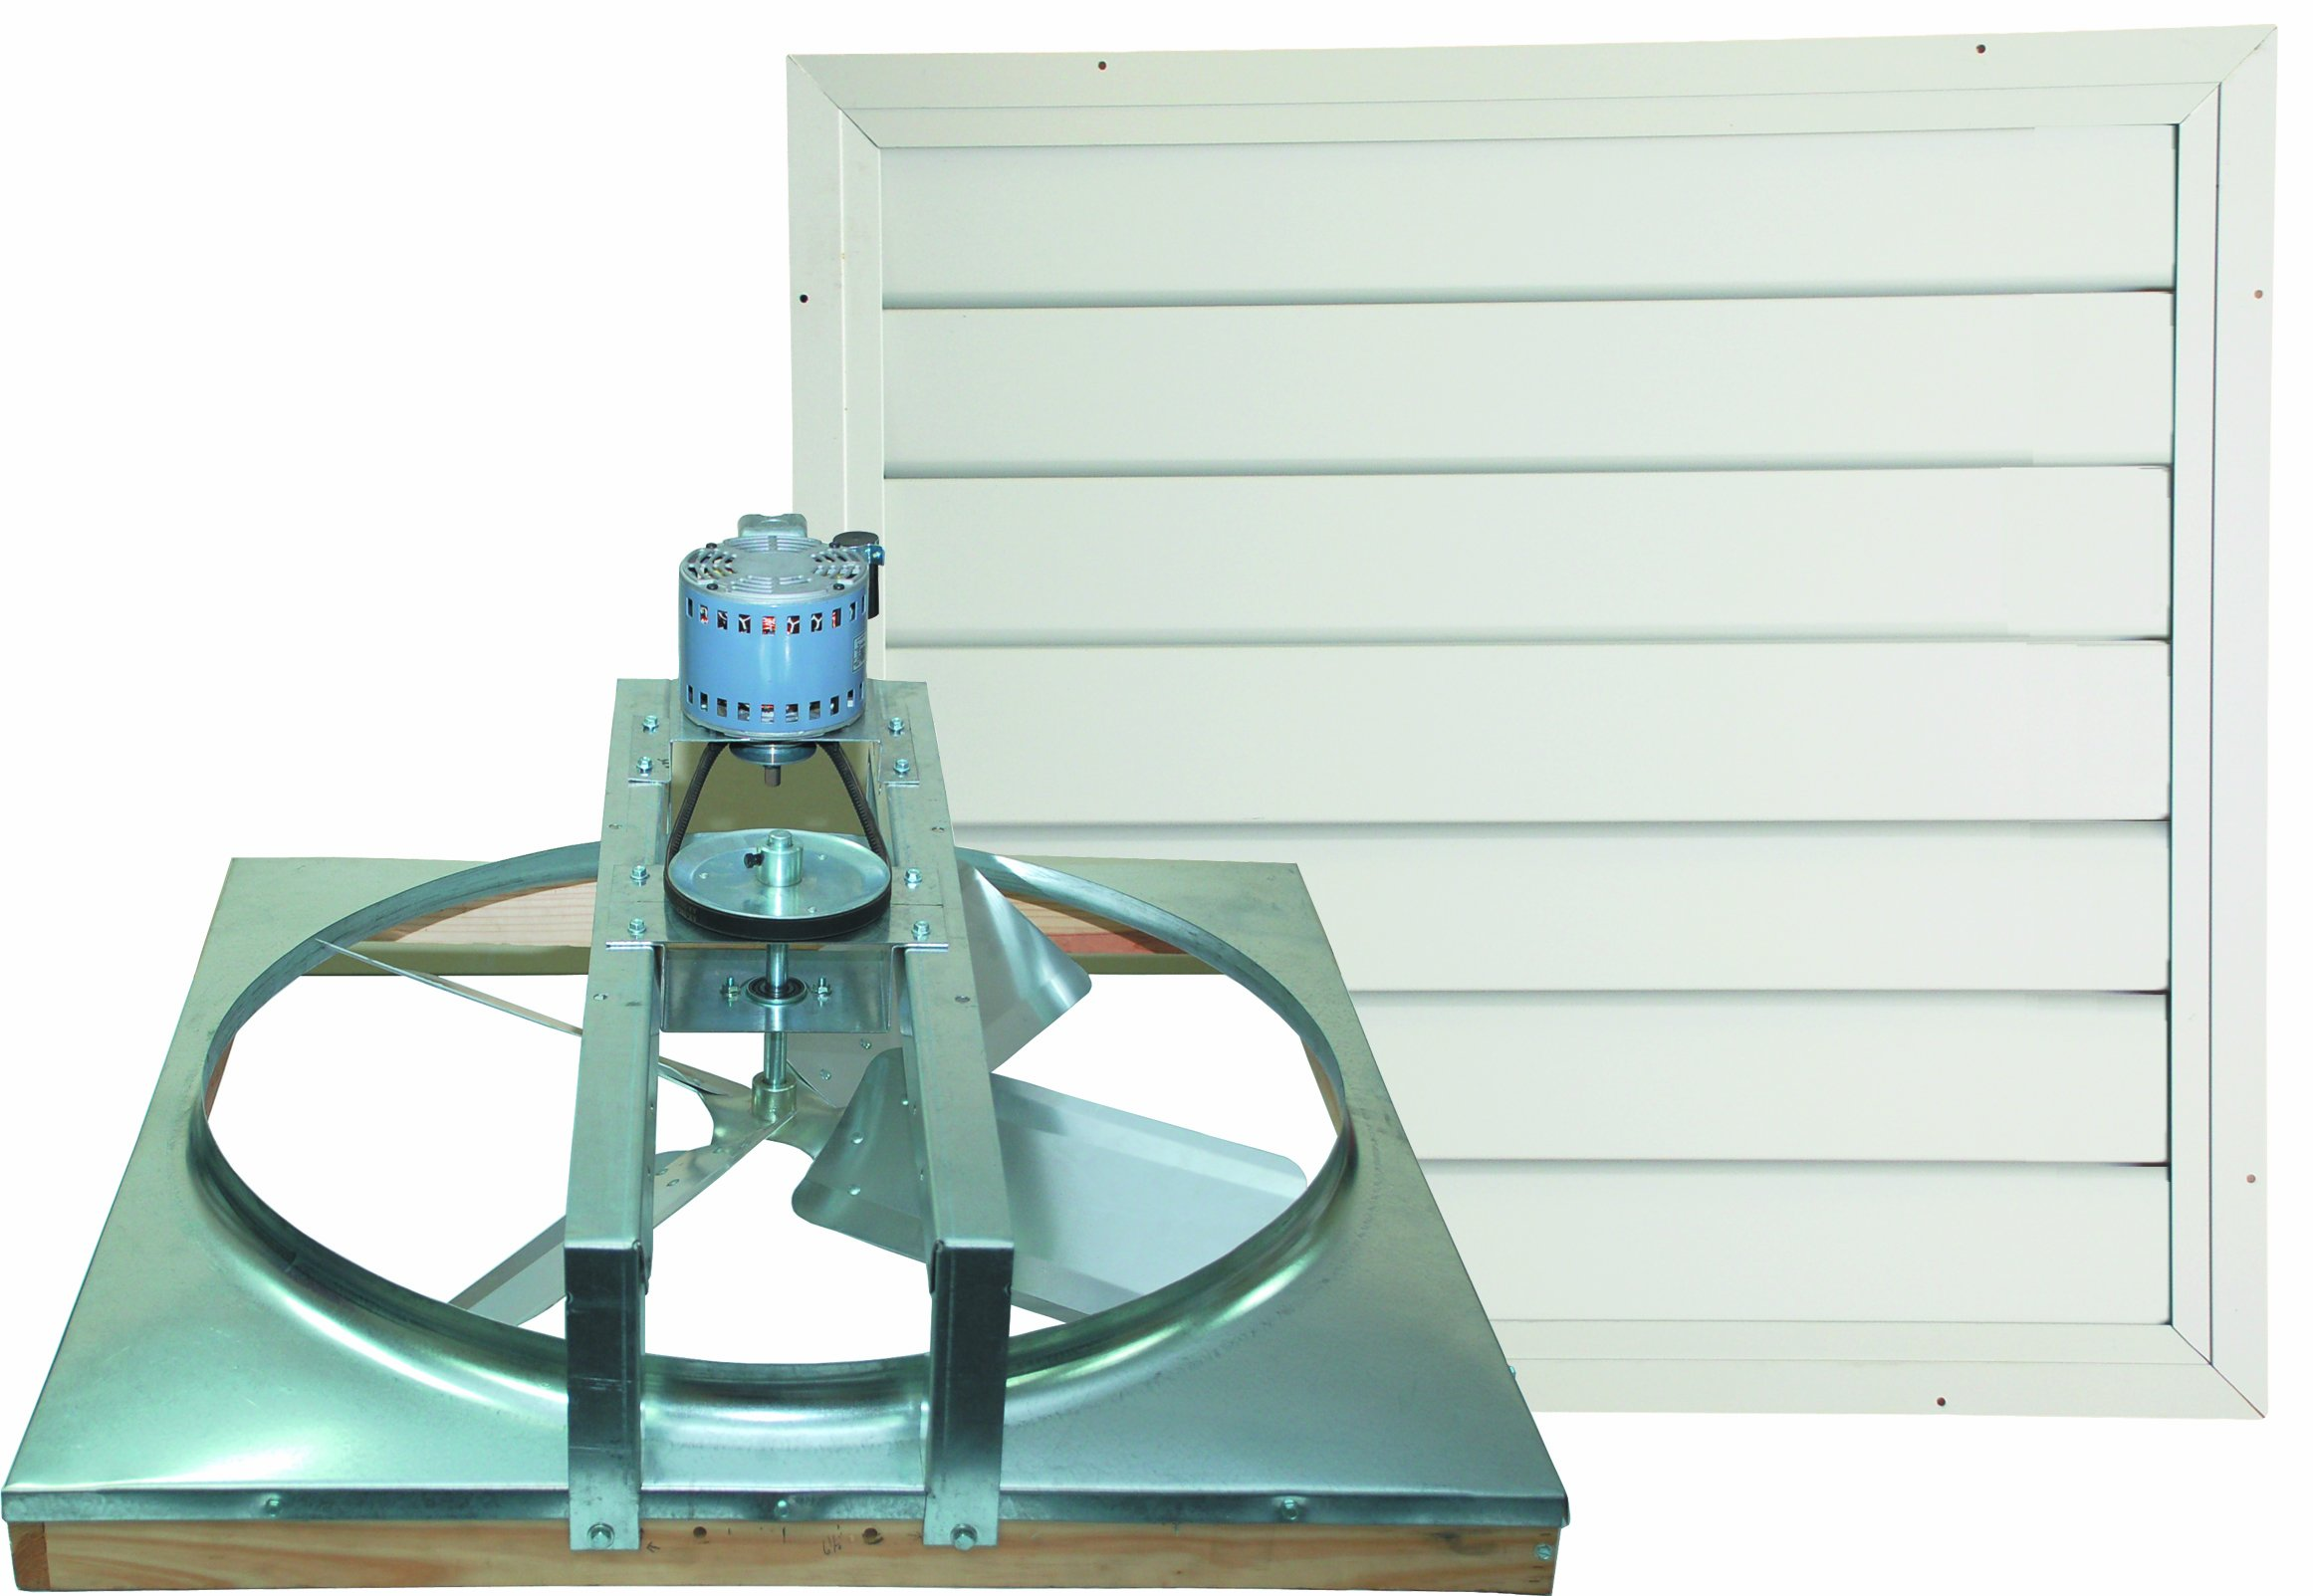 Cool Attic CX24BDM-2SPD Belt Drive 2-Speed Whole House Fan with Shutter, 24-Inch, White by Cool Attic (Image #1)